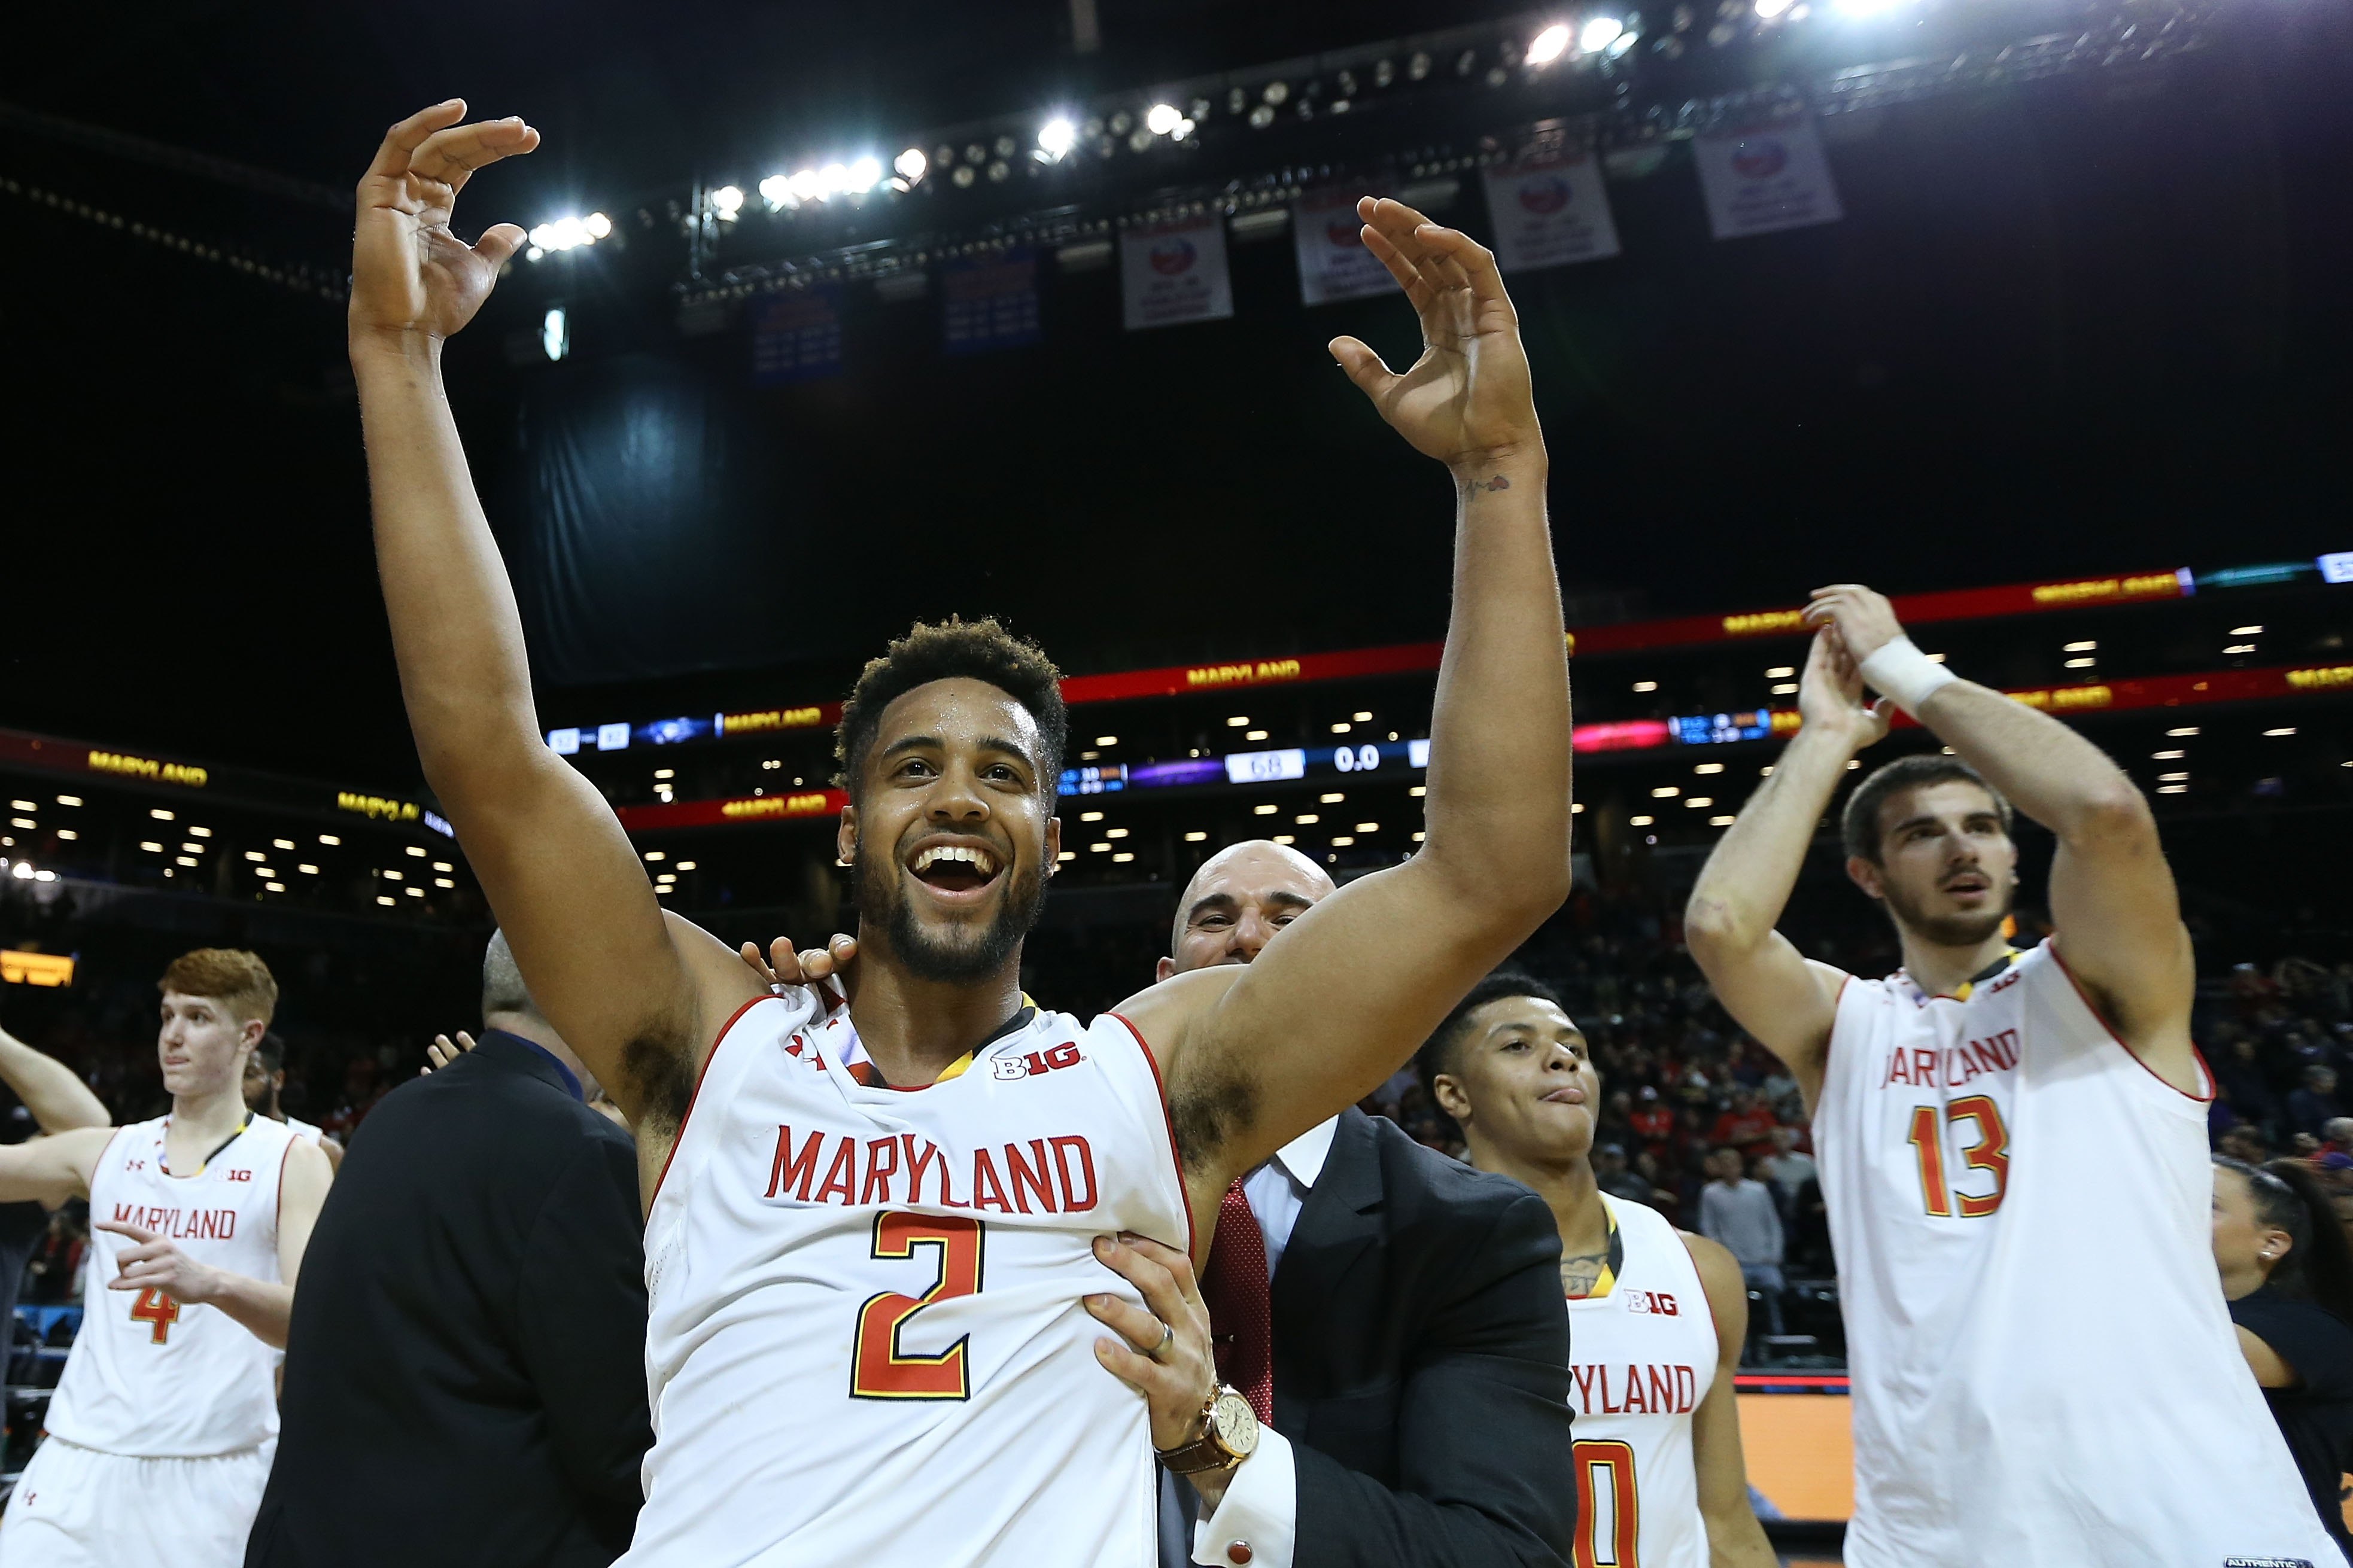 NEW YORK, NY - NOVEMBER 26: Melo Trimble #2 of the Maryland Terrapins celebrates after hitting the game winning shot as they defeated the Kansas State Wildcats 69-68 during the championship game of the Barclays Center Classic at Barclays Center on November 26, 2016 in the Brooklyn borough of New York City. (Photo by Michael Reaves/Getty Images)